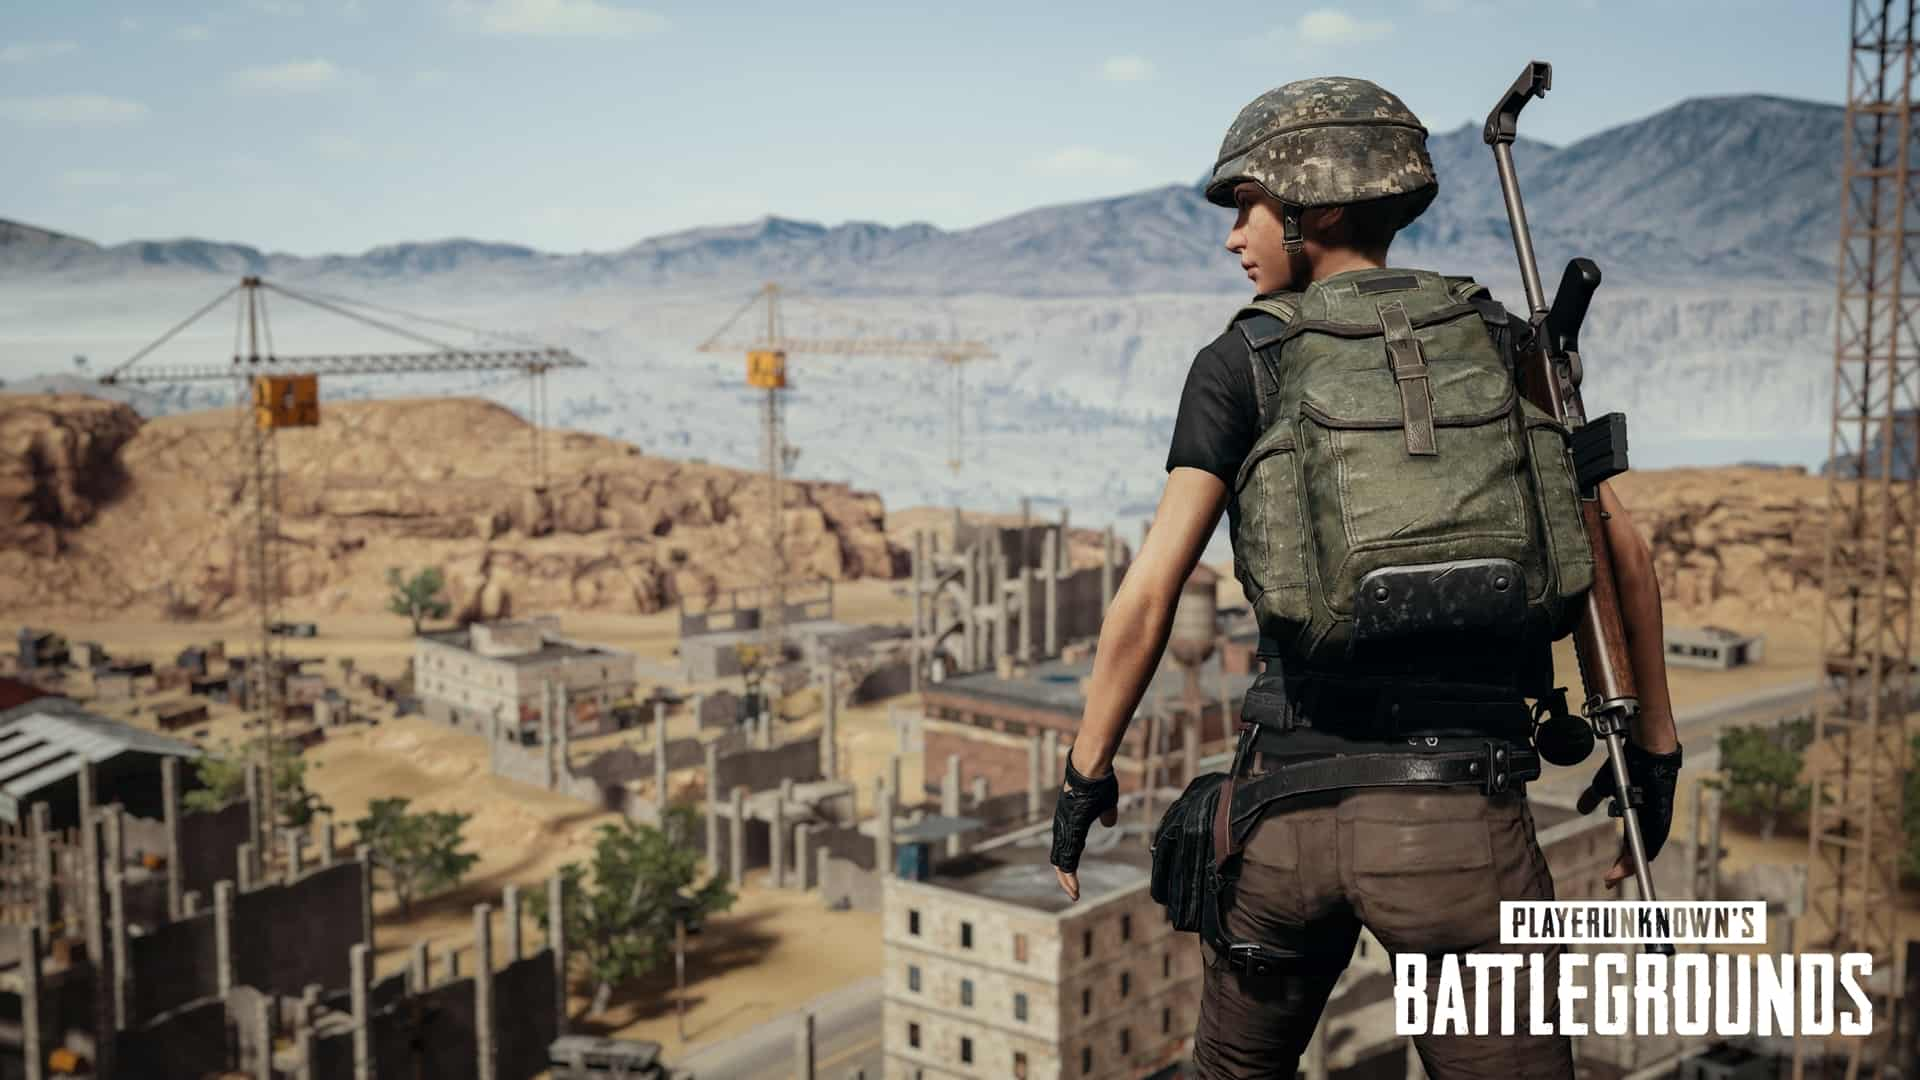 Pubg Air Drop Live Wallpaper: PUBG Mobile Update 0.4.0 Patch Notes Details Huge